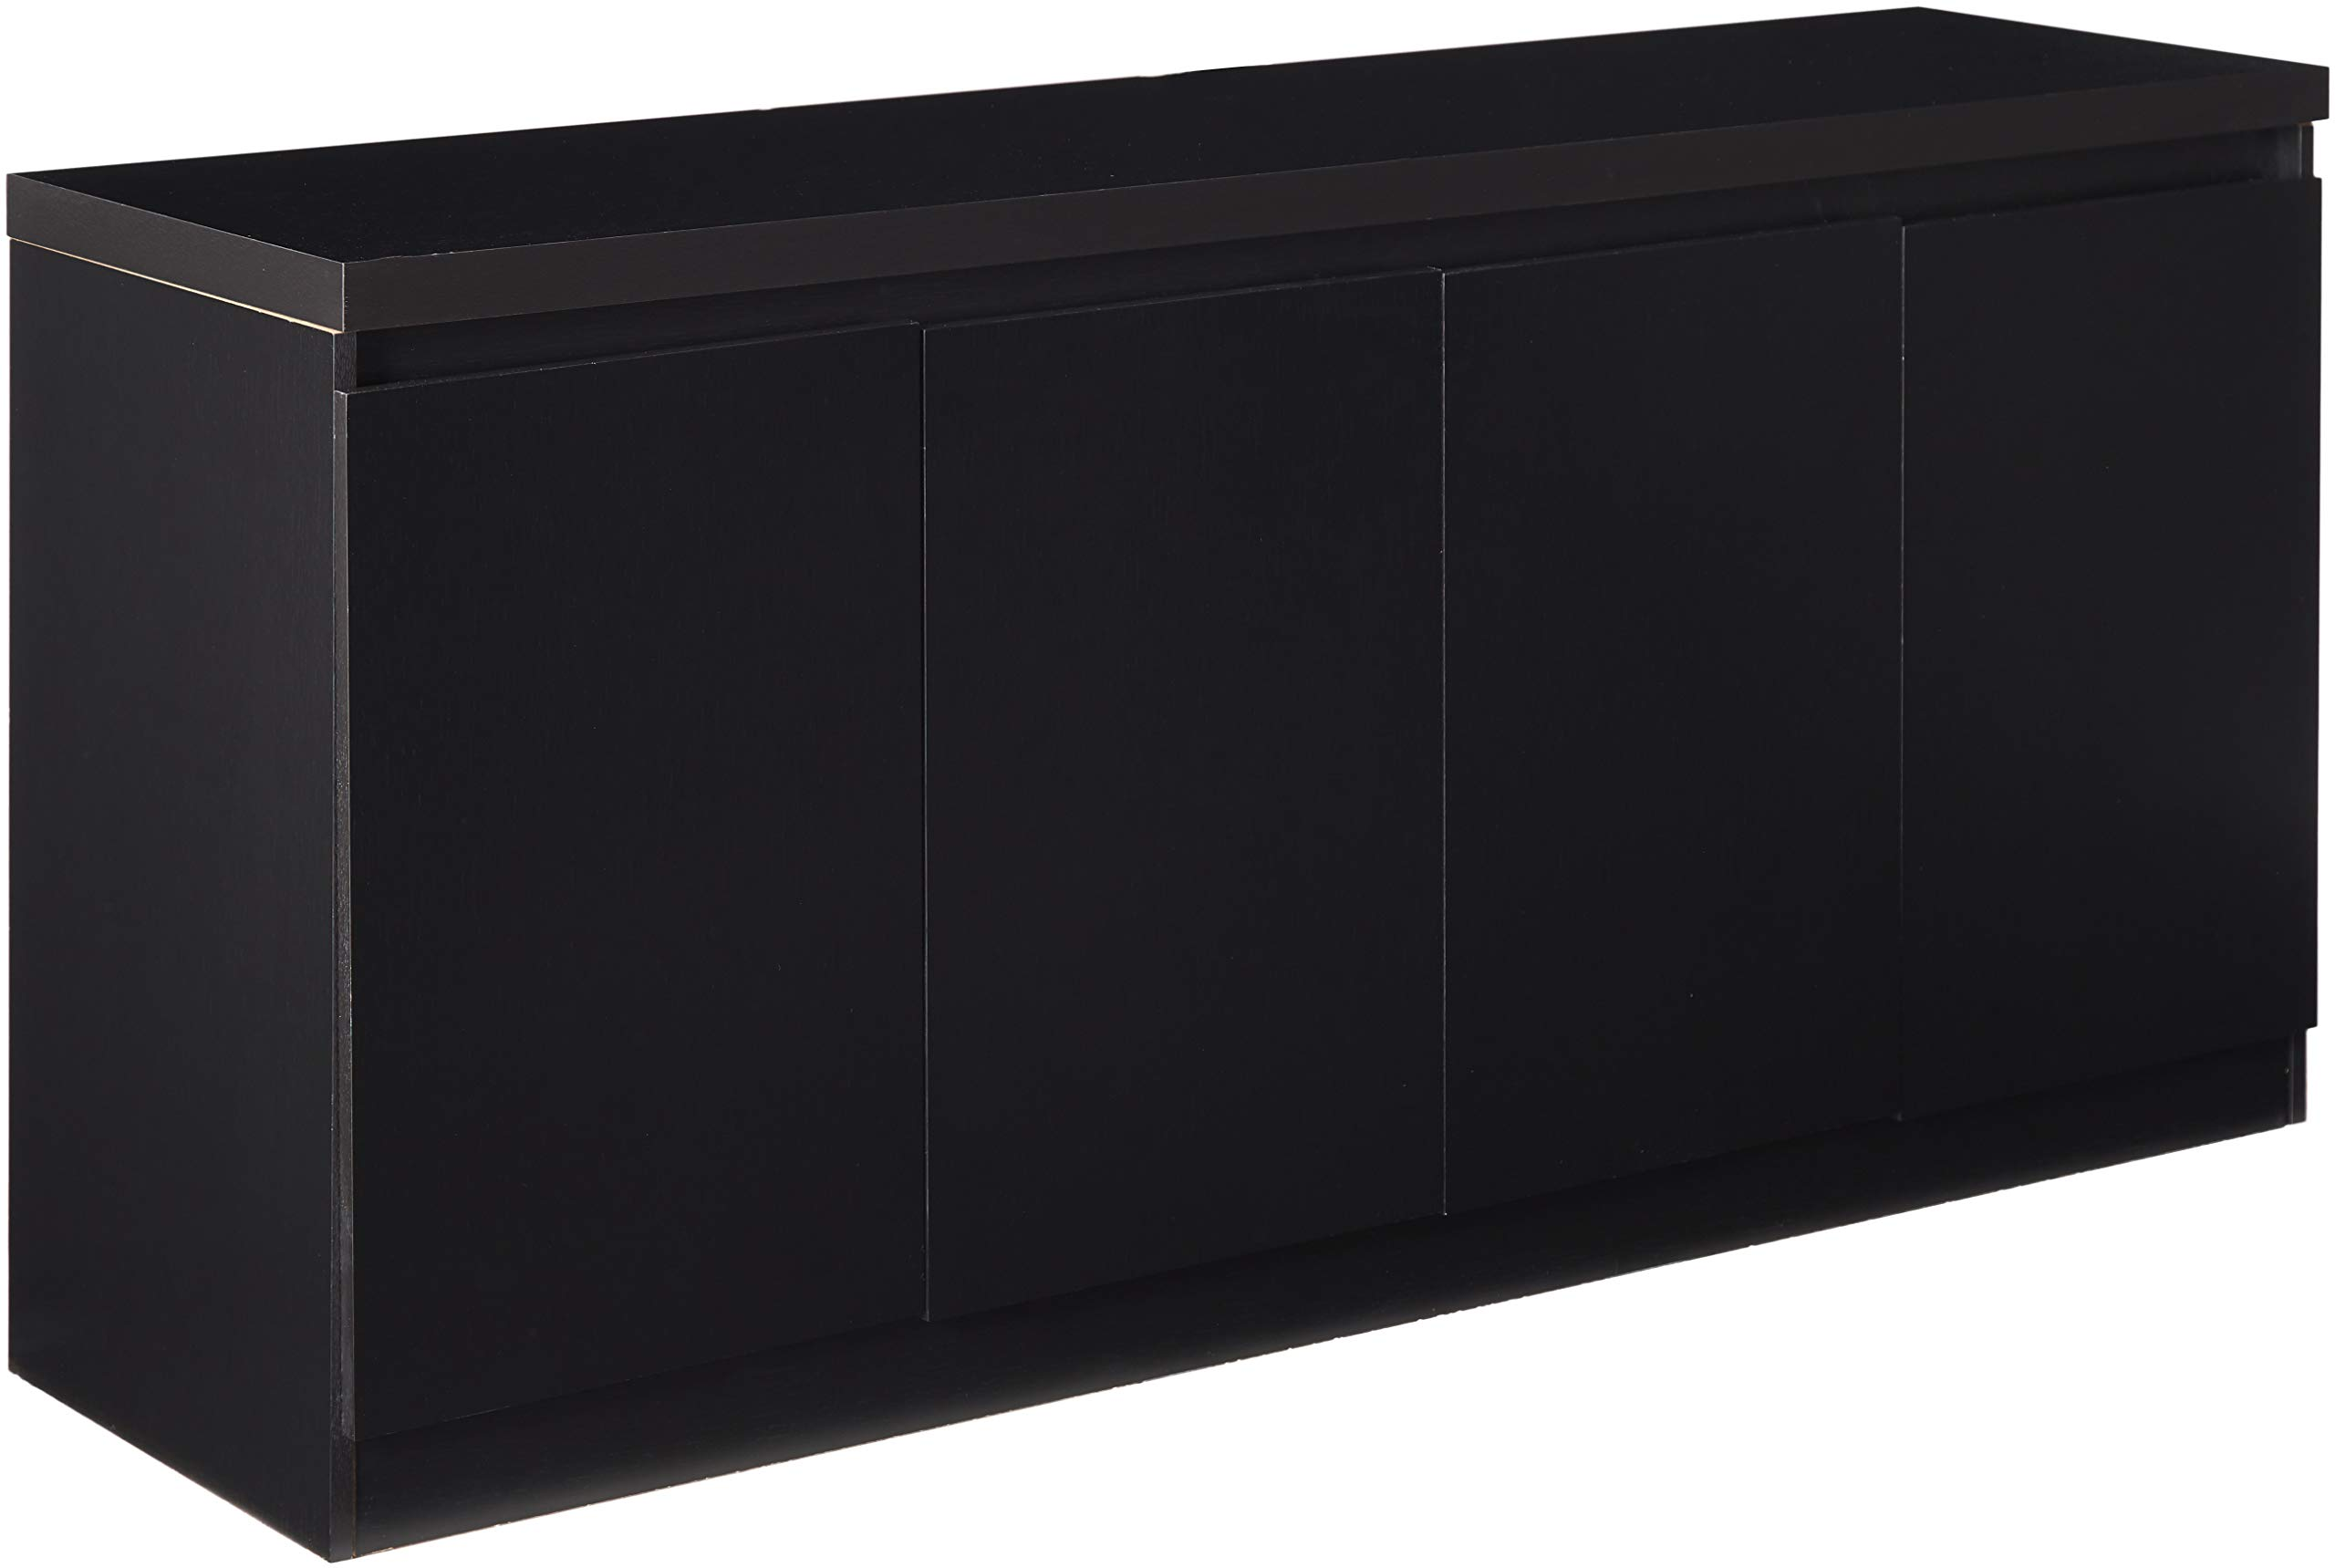 Manhattan Comforts 100653-MC Viennese Sideboard Black Matte